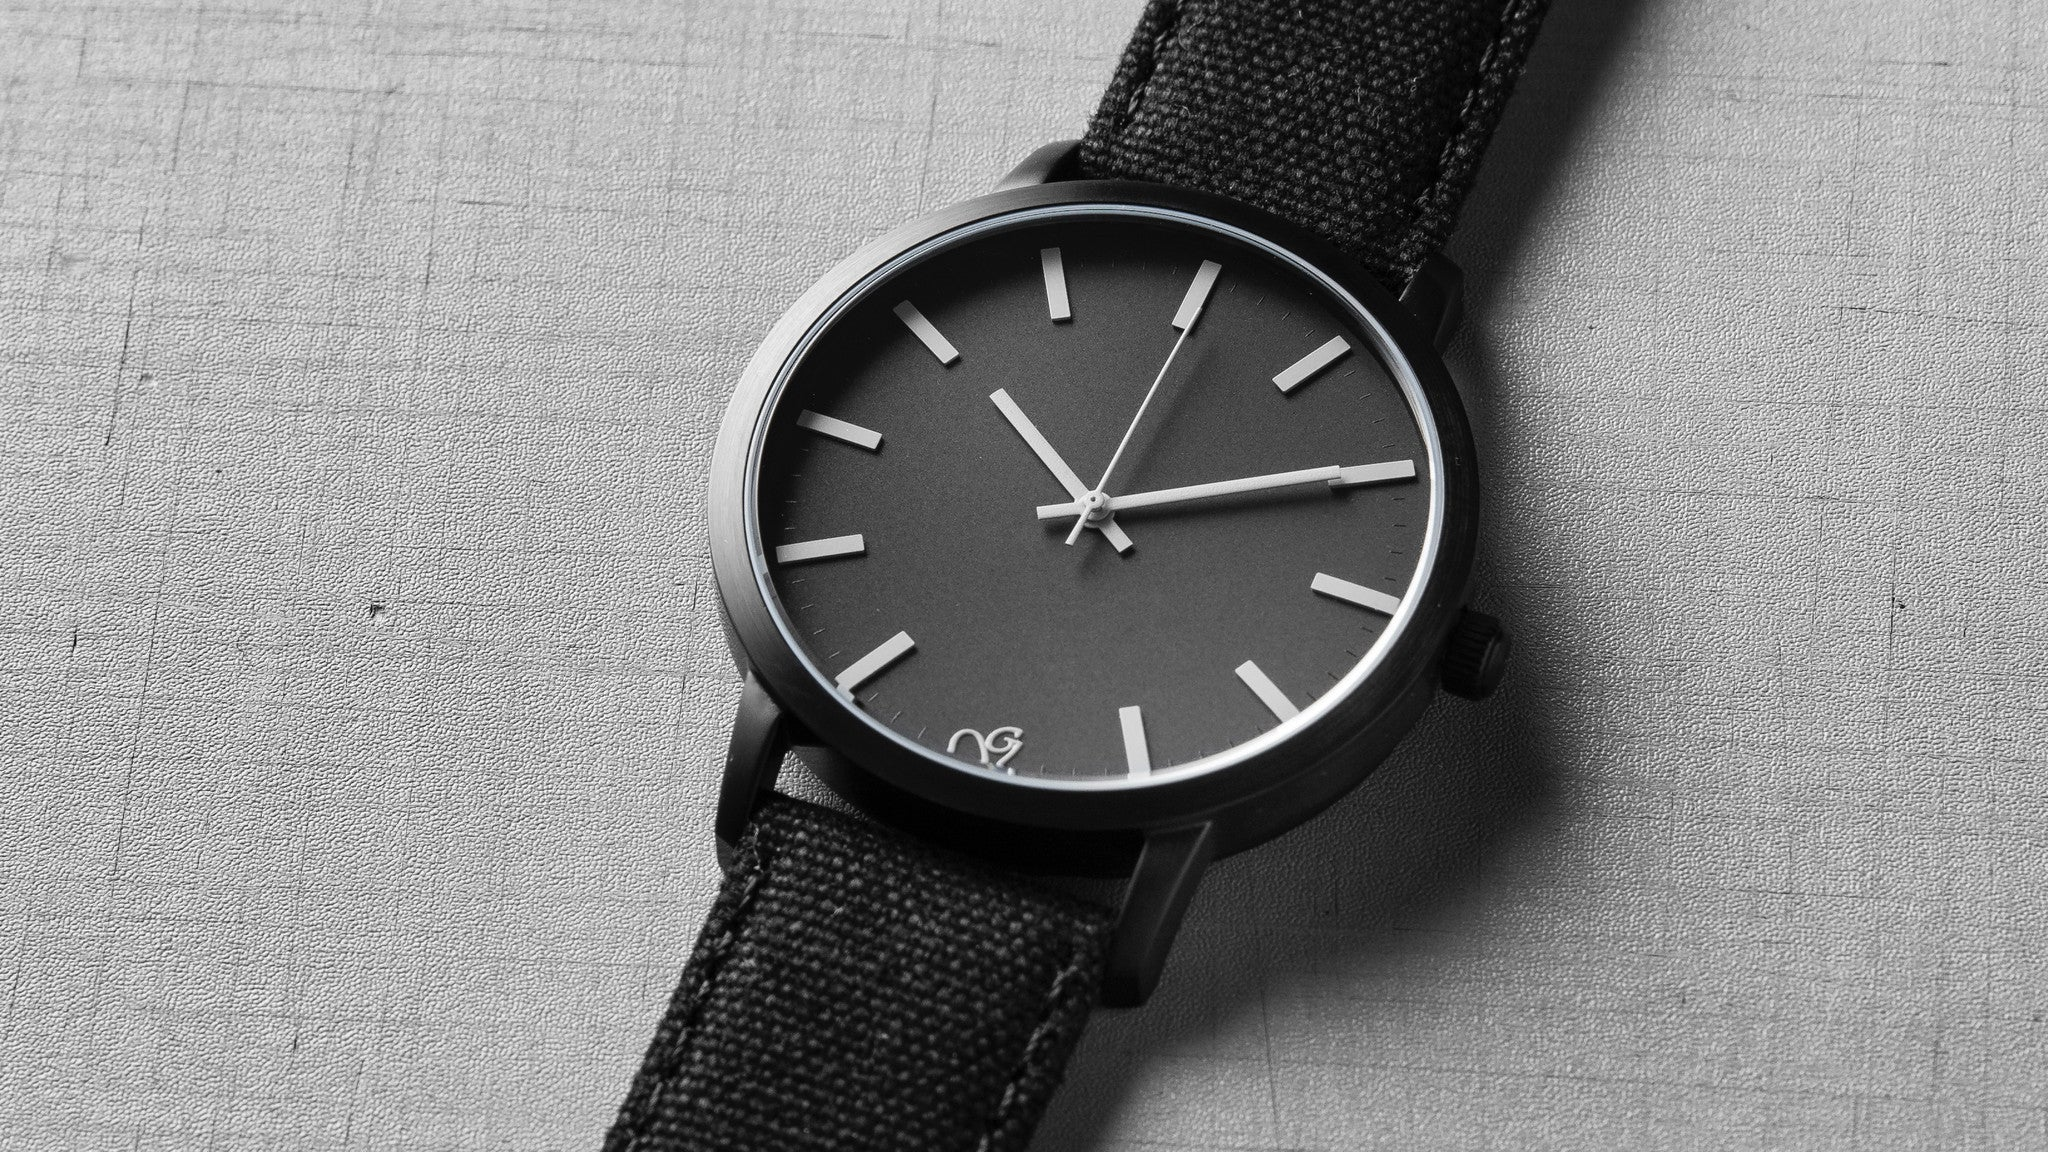 All black watch and all matte, shop your watch online